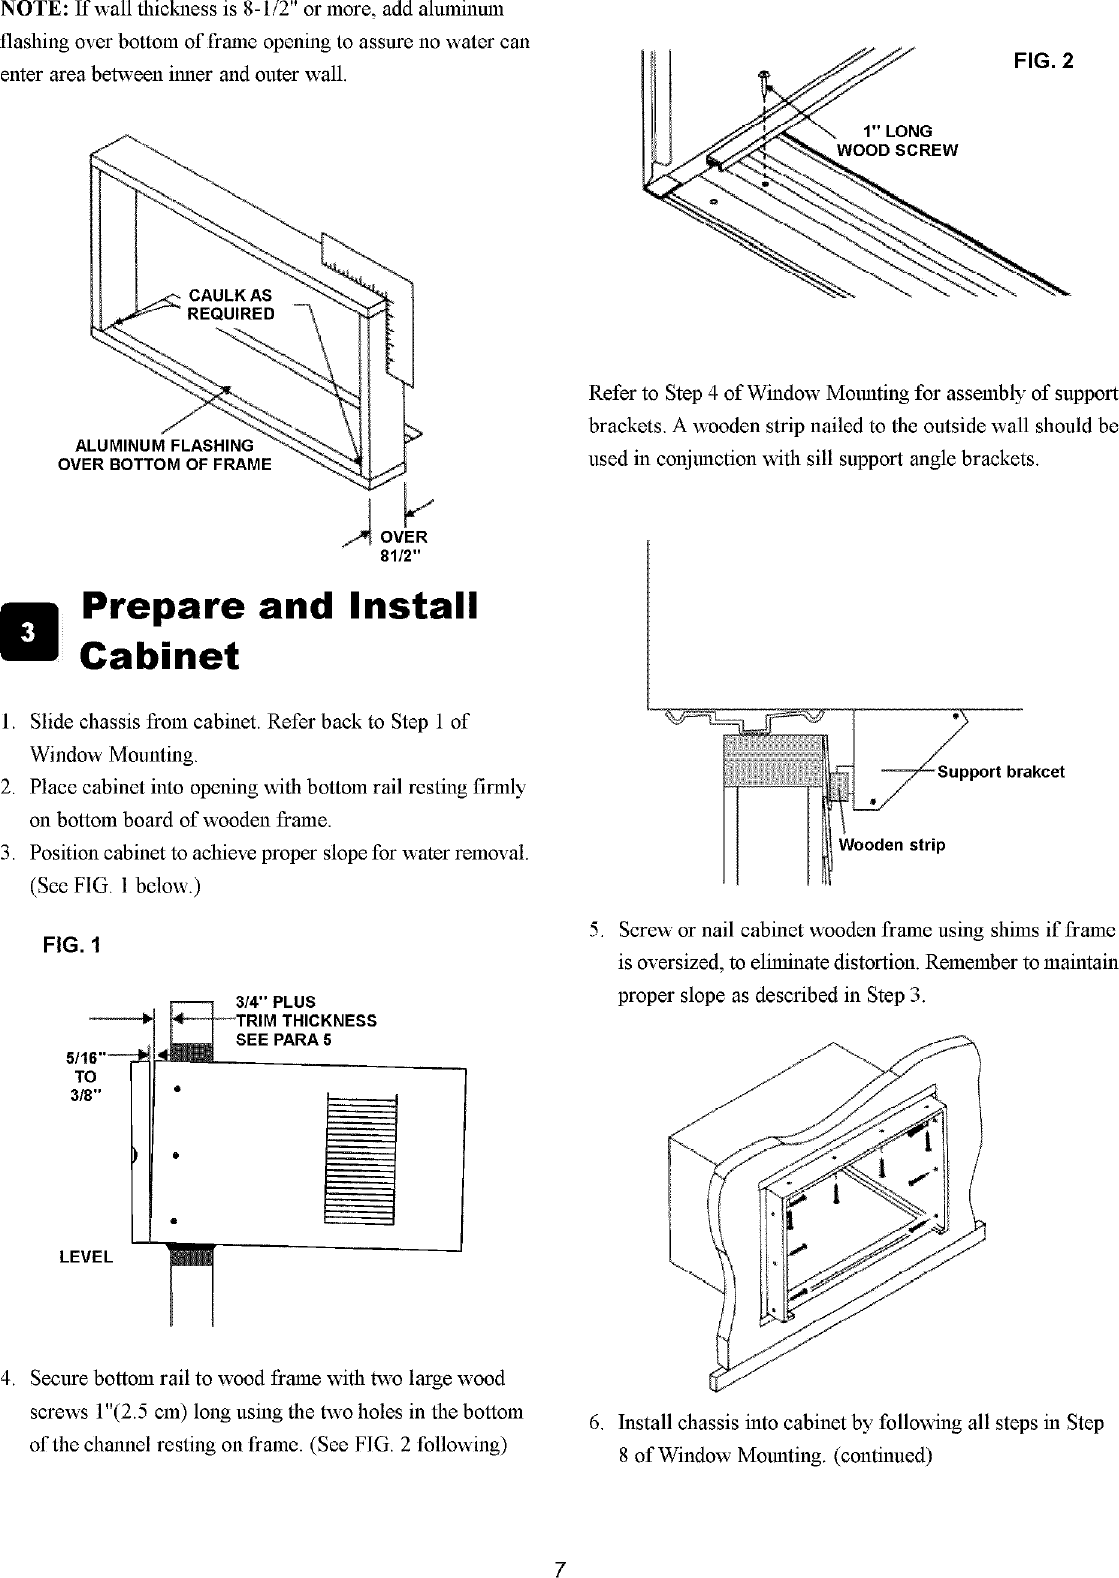 Gibson Gam154q1a1 User Manual Air Conditioner Manuals And Handler Wiring Schematic Page 7 Of 8